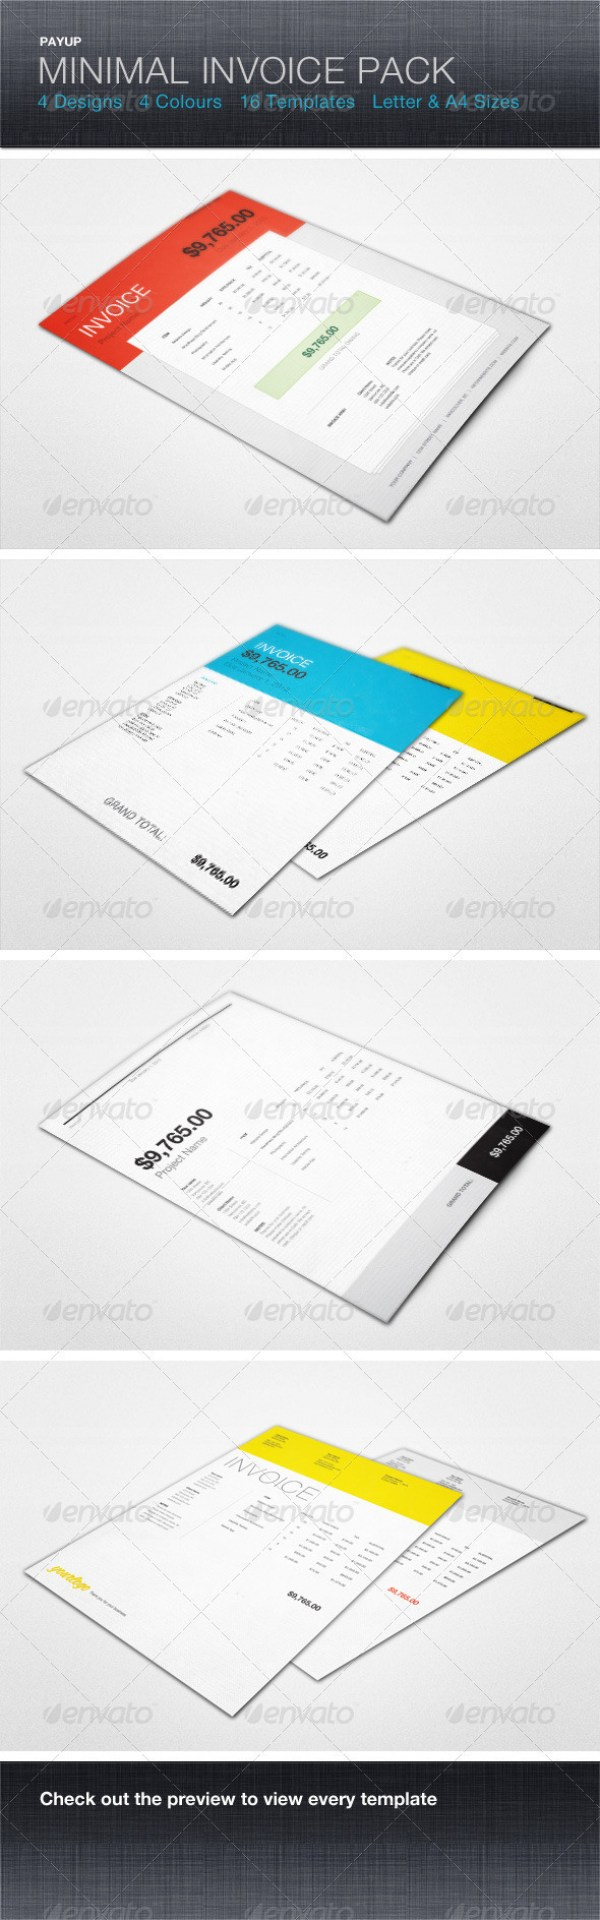 minimal Invoice Template Pack